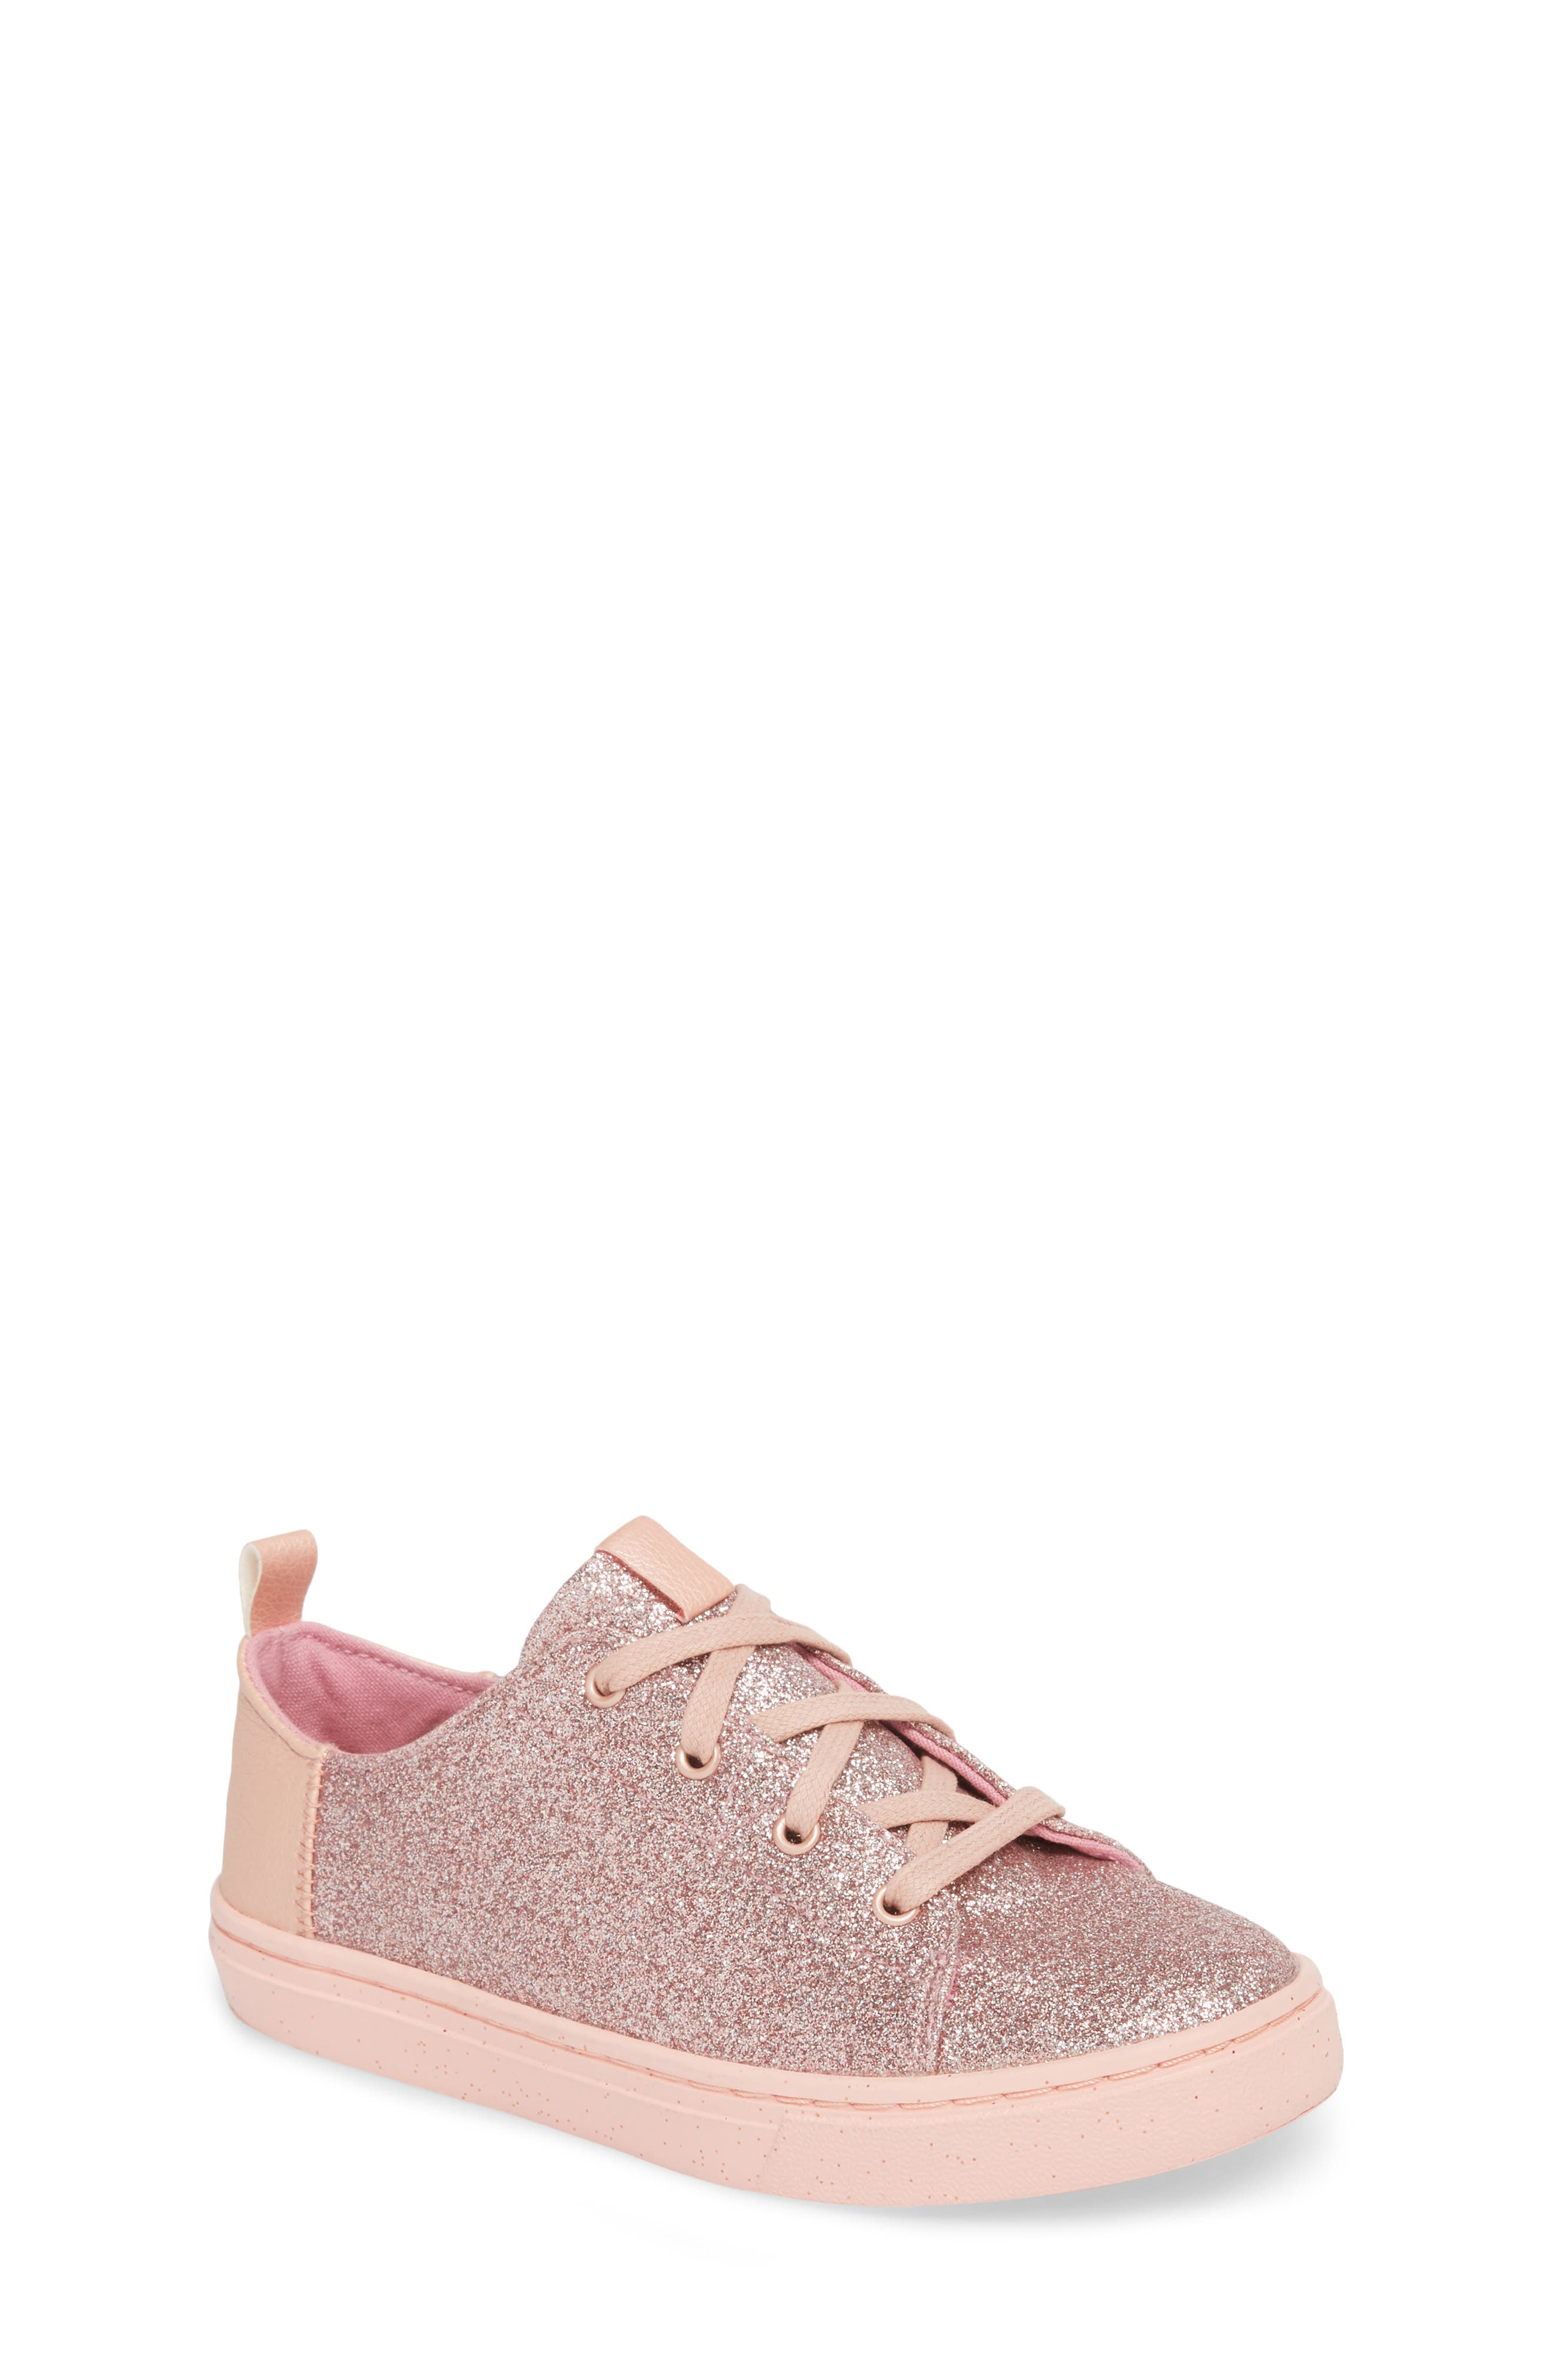 TOMS Lenny Metallic Glitter Sneaker, Main, color, 650